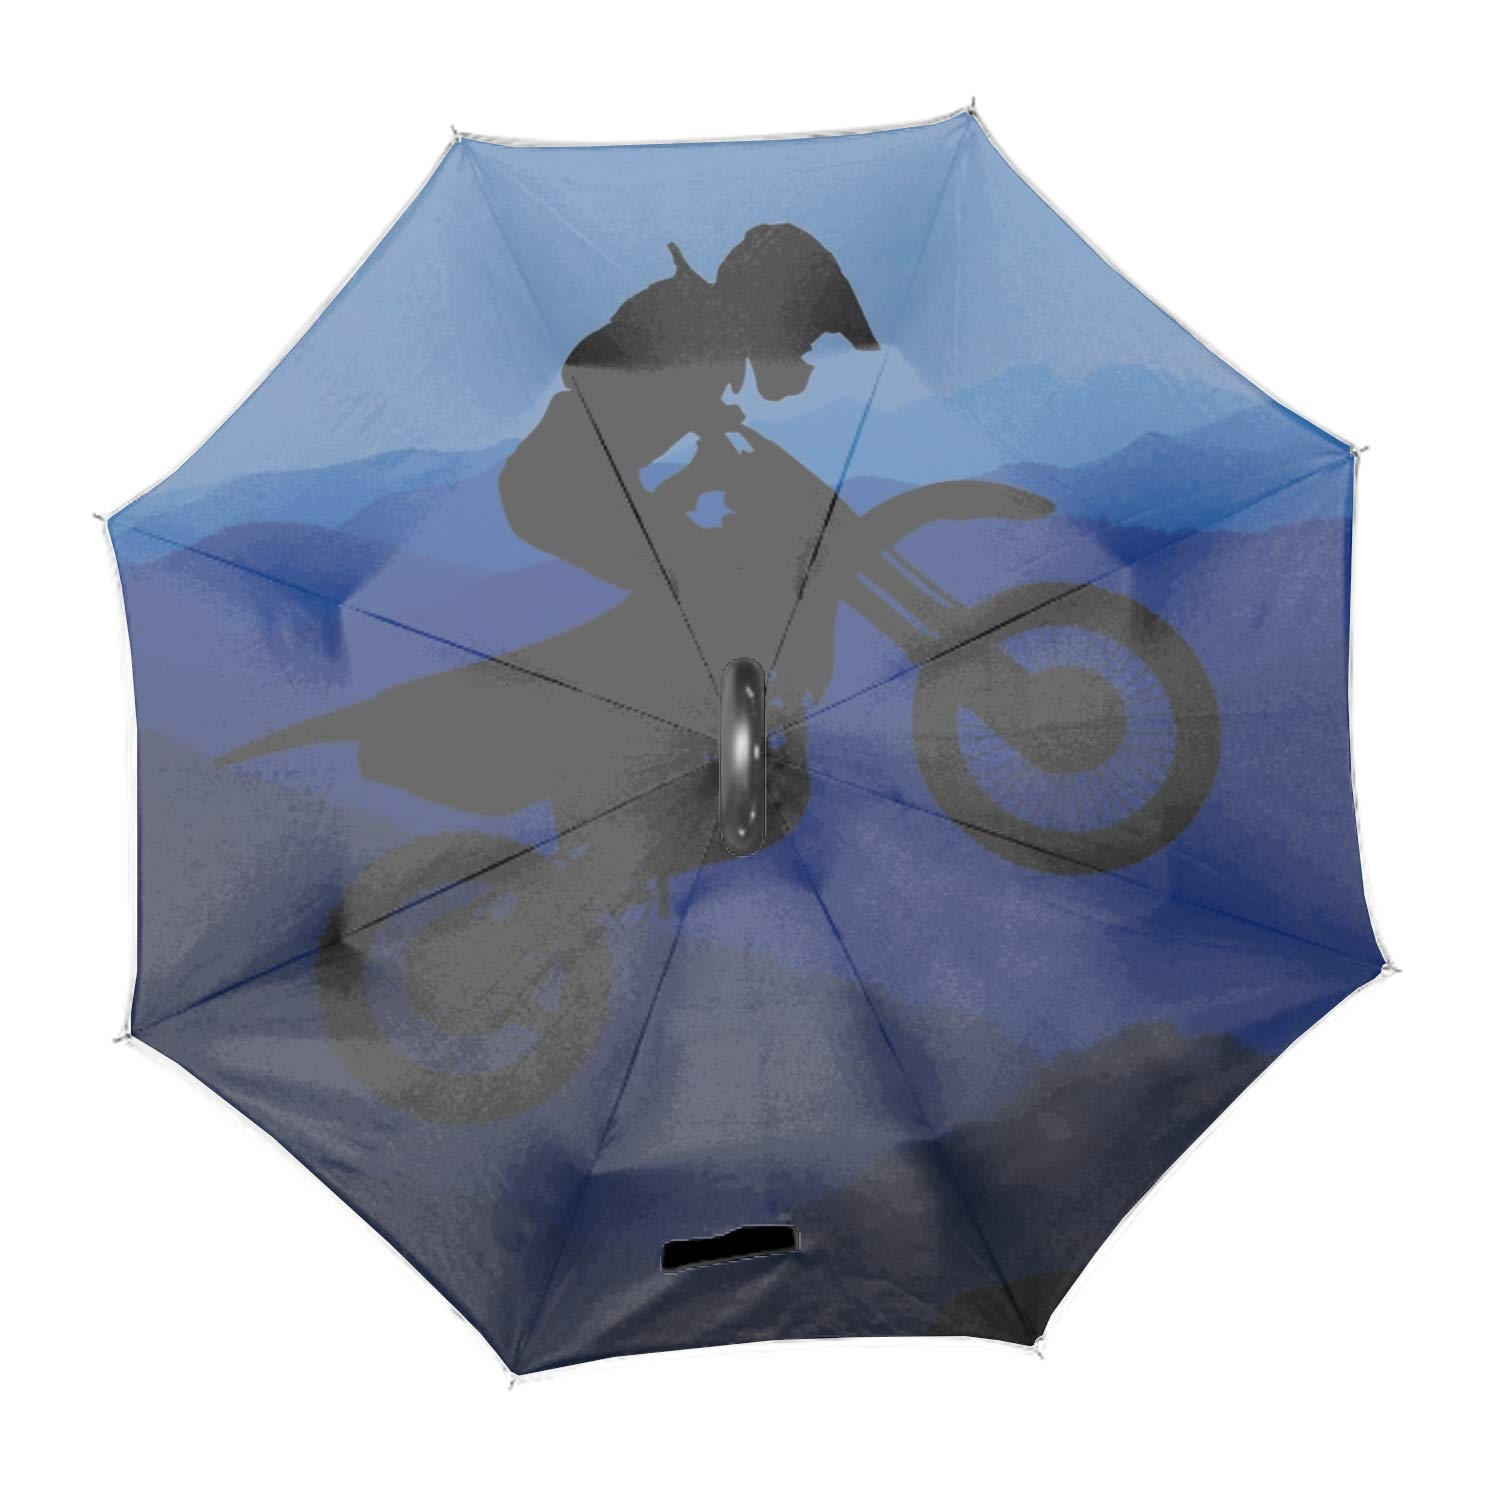 Travel Umbrella Windproof,8 Ribs Finest Large Compact Umbrella Windproof,Auto Open Close Umbrellas For Women and Men,Blue